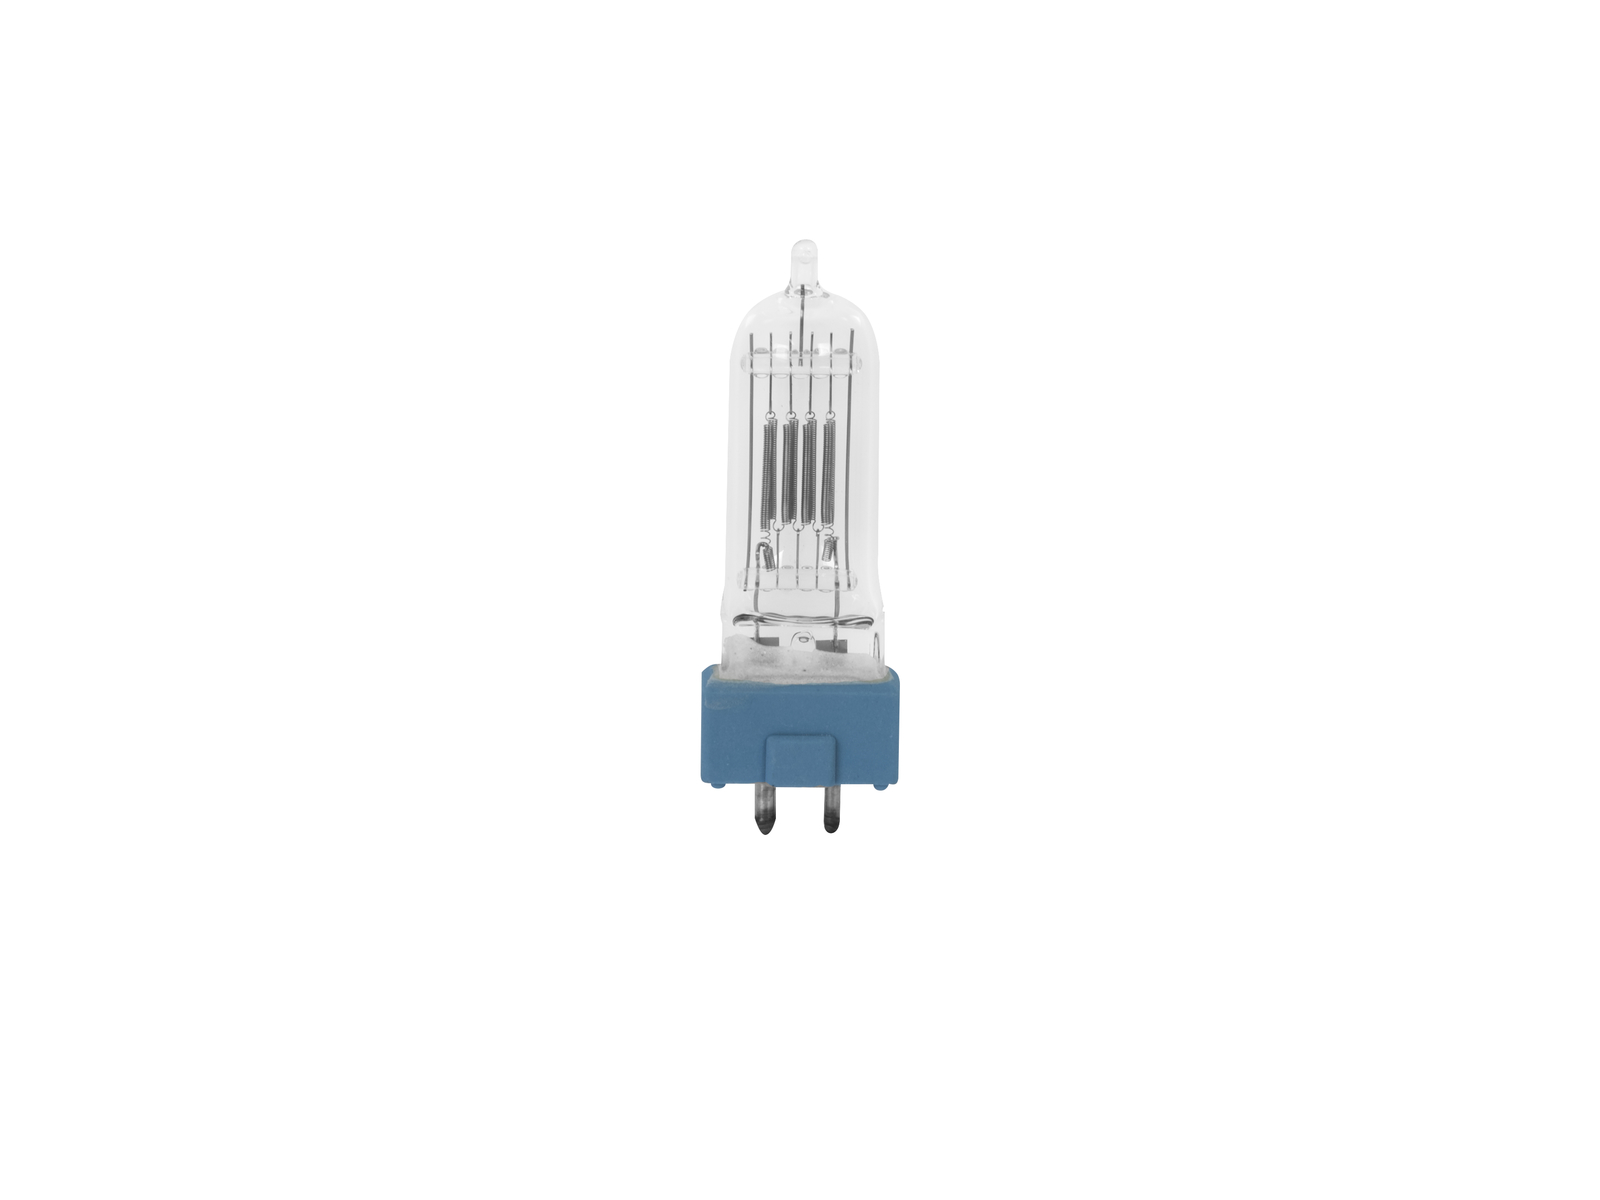 PHILIPS 6995IBP 240V/1000W GY9.5